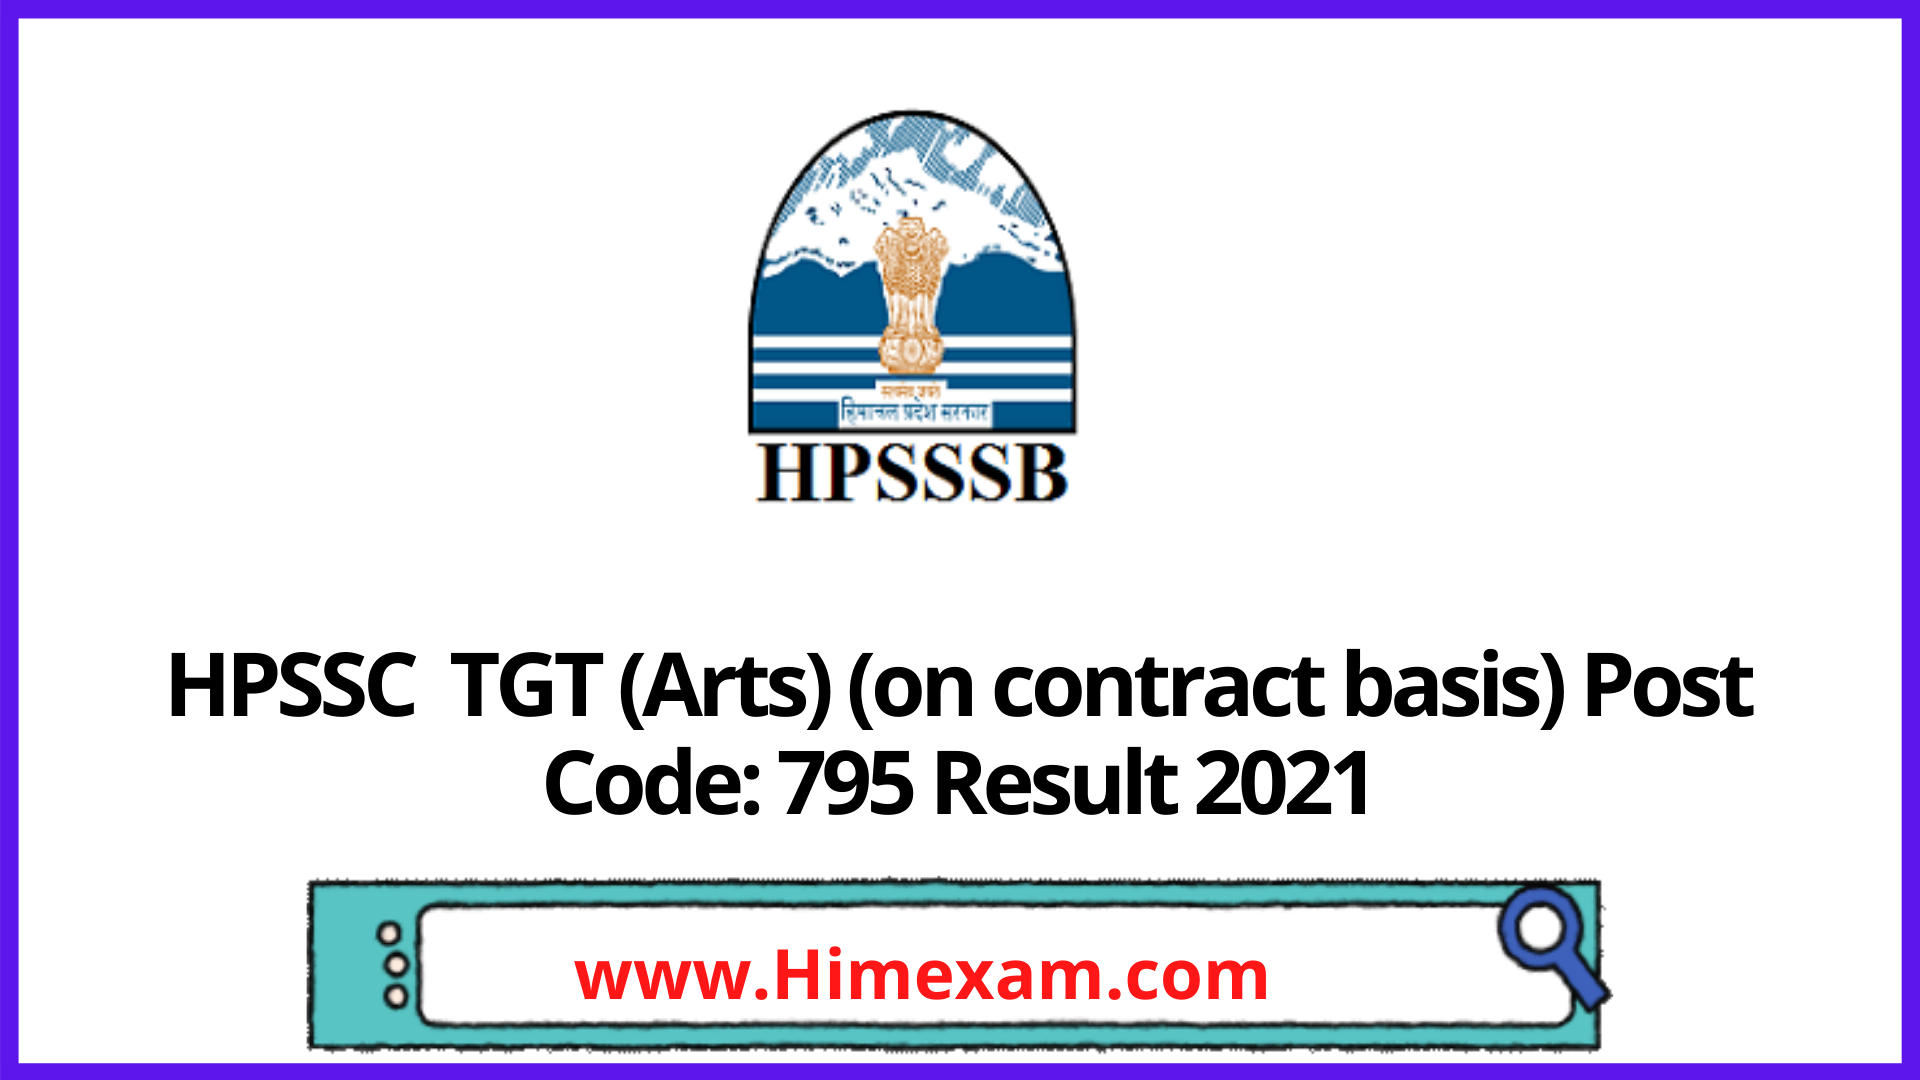 HPSSC  TGT (Arts) (on contract basis) Post Code: 795 Result 2021